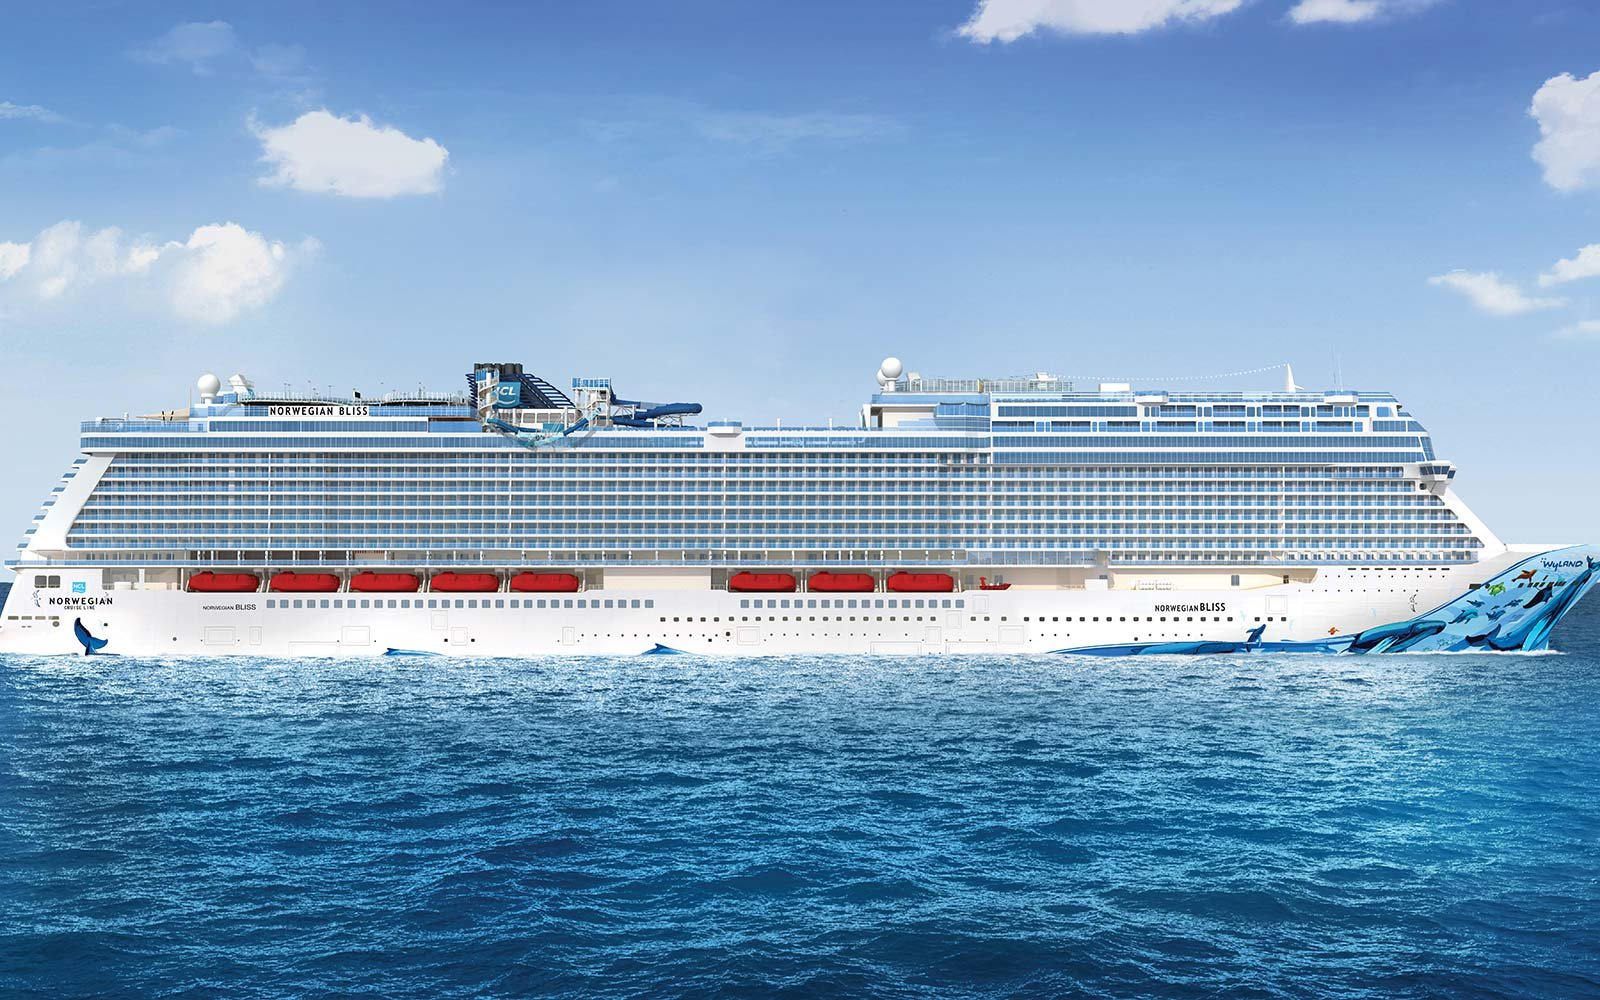 Norwegian Cruise Line Bliss Ship At Sea